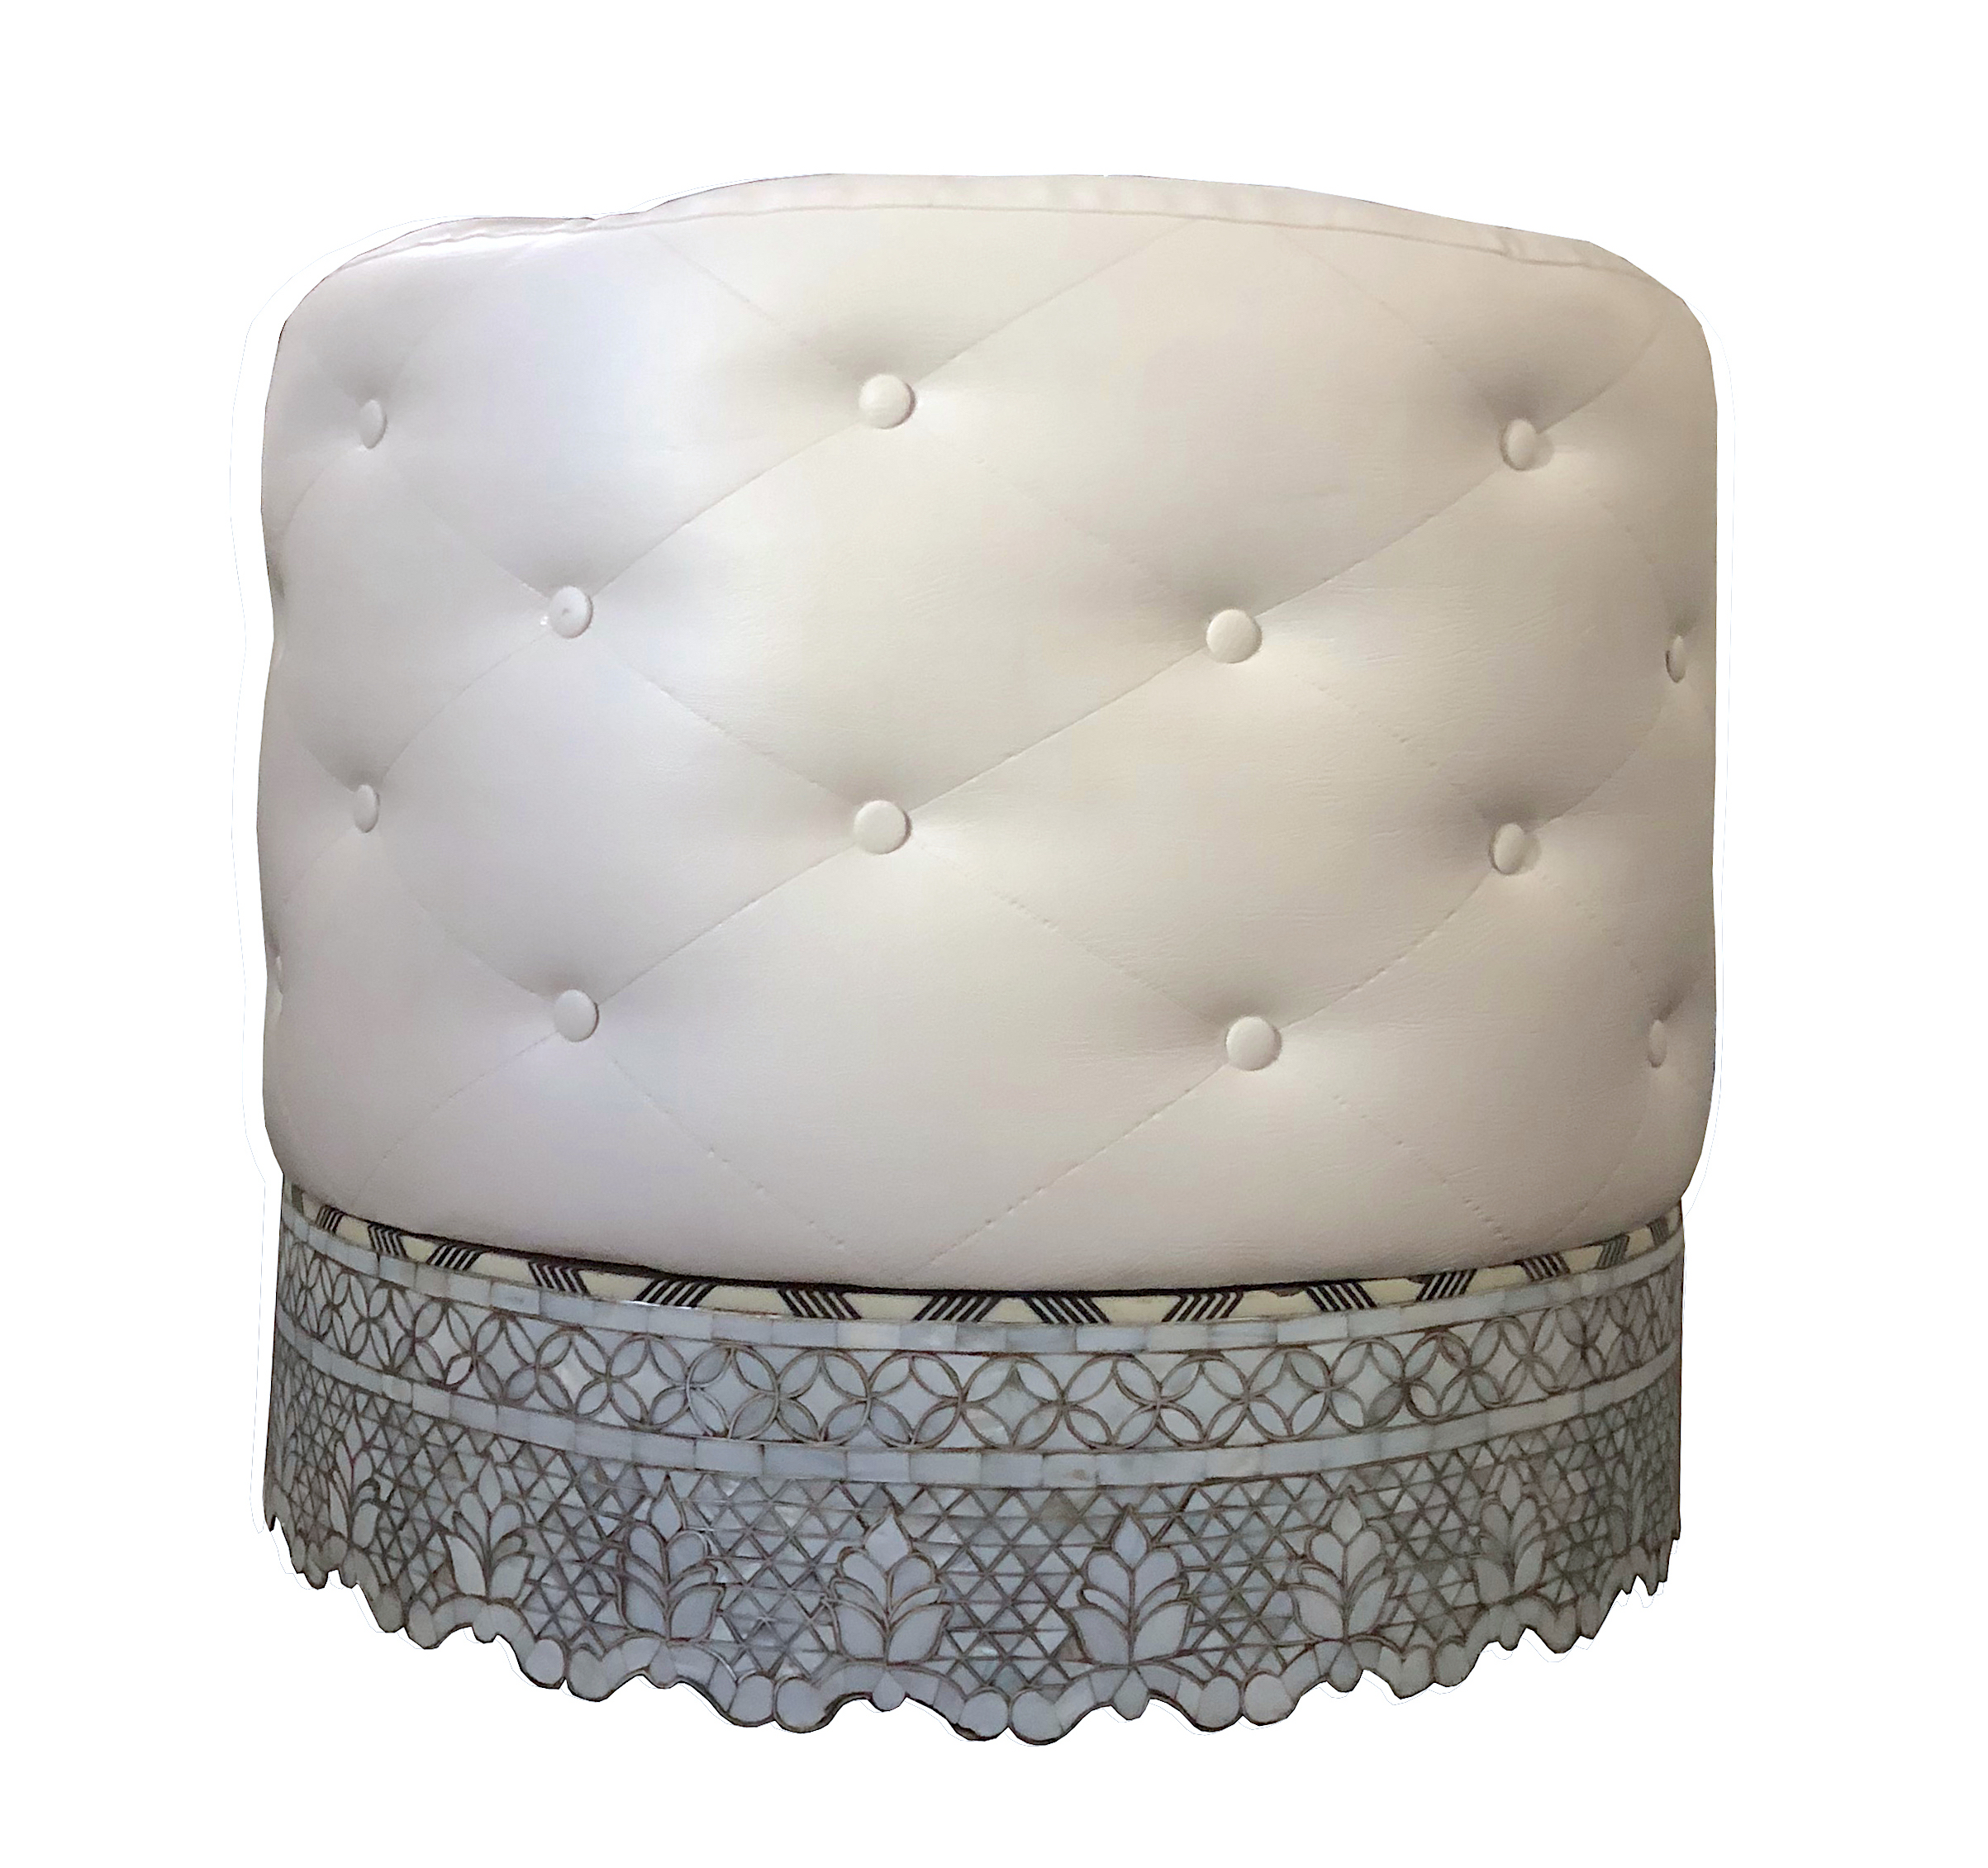 Syrian Mother of pearl inlay Ottoman